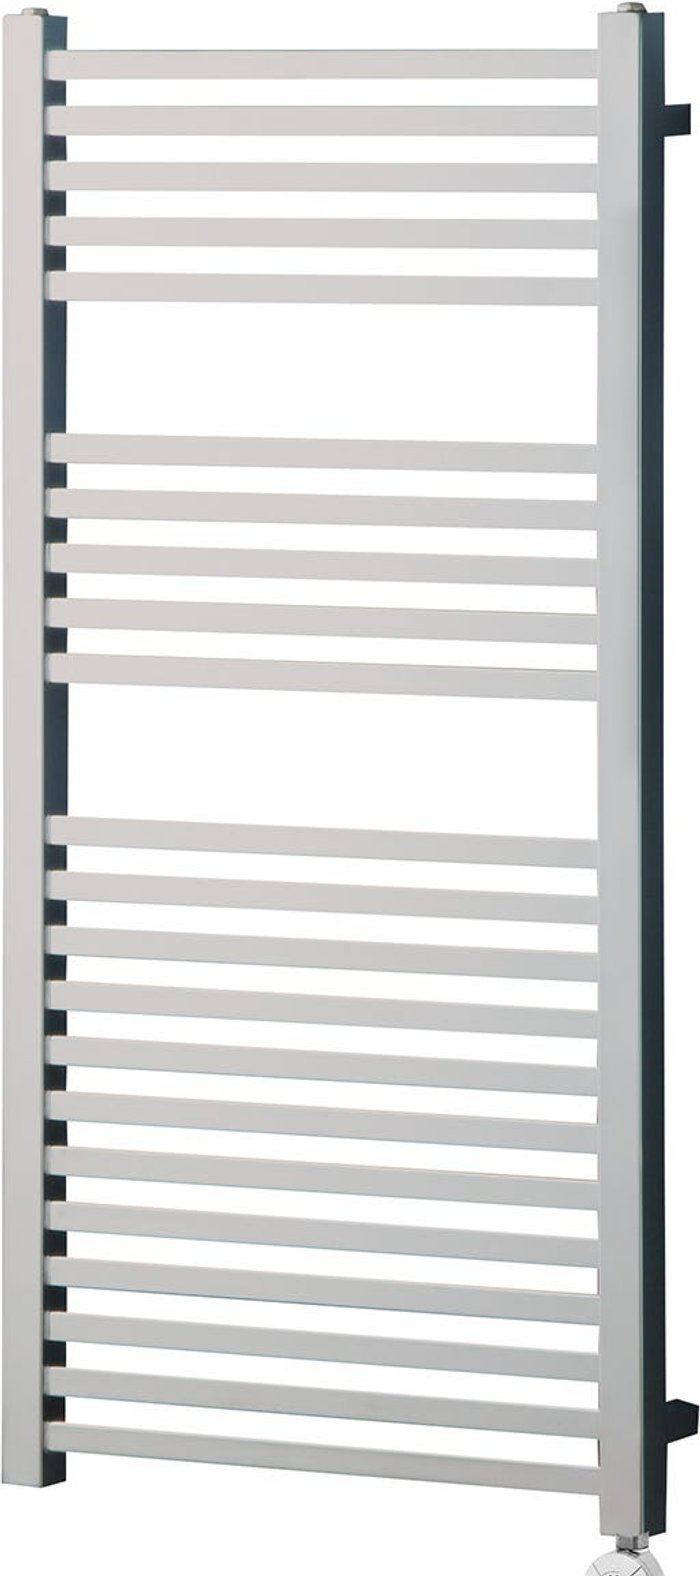 Towelrads Towelrads Square Electric Towel Warmer 1200 x 600 - Chrome